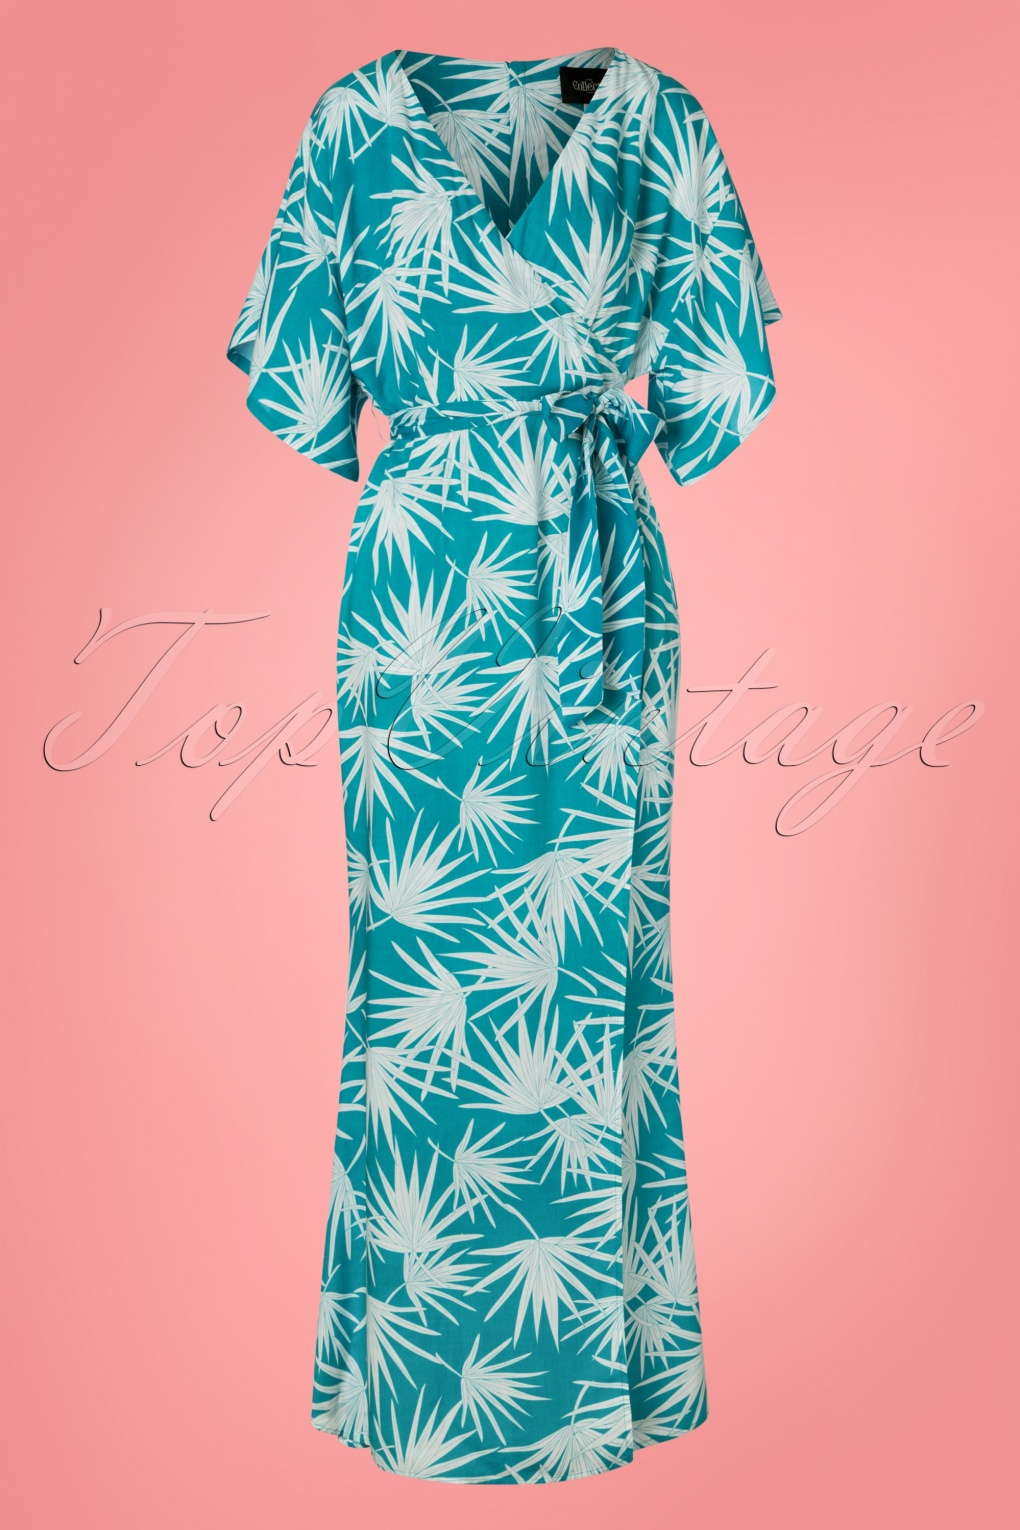 Maxi Jurk Turquoise.70s Kelly Palm Maxi Dress In Teal Blue